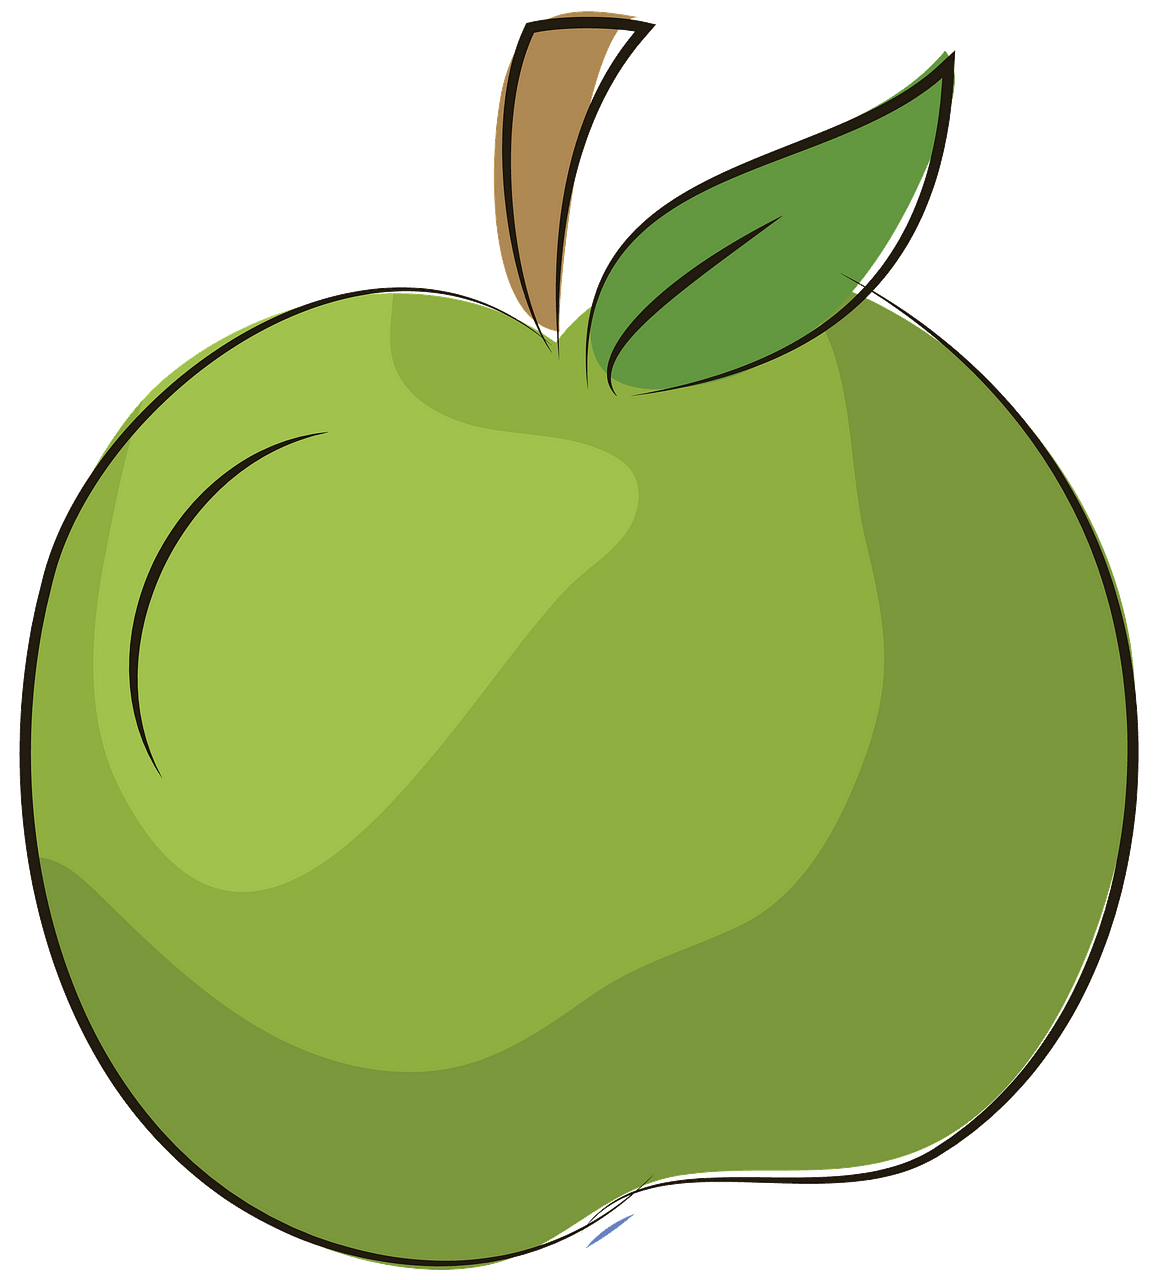 Green apple with leaf clipart. Free download..